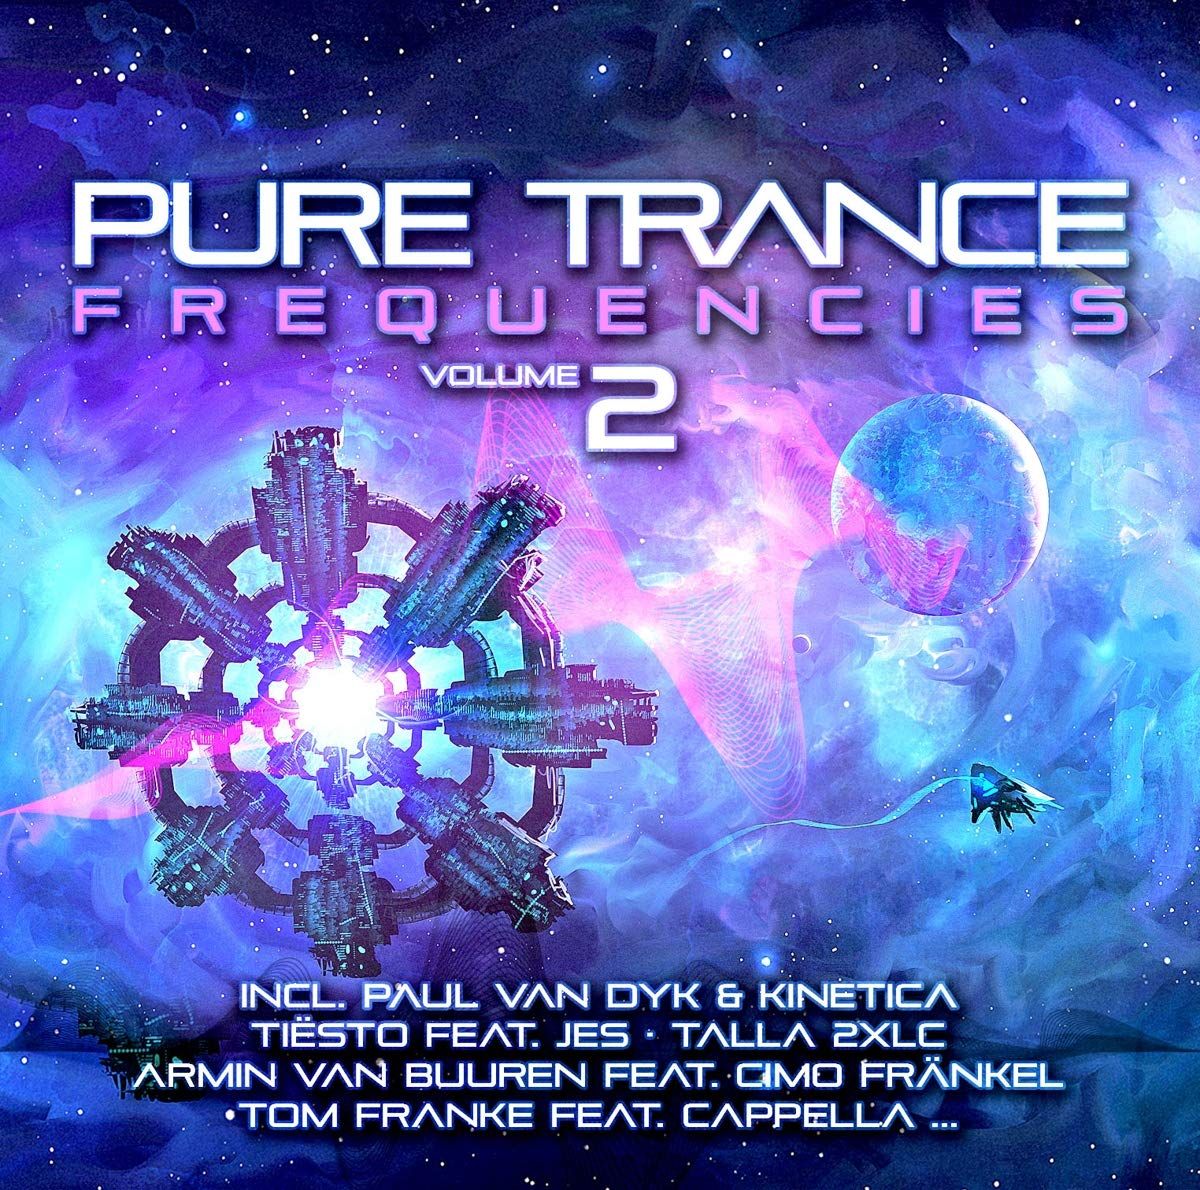 "Out now ""Pure Trance Frequencies Vol. 2"" CD Compilation incl. 3 of my tunes:  CD 1 Track 17:  @DJ_TEKNO & DJ T.H. - Take No Prisoners (@ronskispeed Remix)  CD 2 Track 14:  DJ T.H. - Leonie  CD 2 Track 17:  @ManuelLeSaux & DJ T.H. with @LinneaSchossow - Butterflies https://t.co/5F7bYsUbfn"